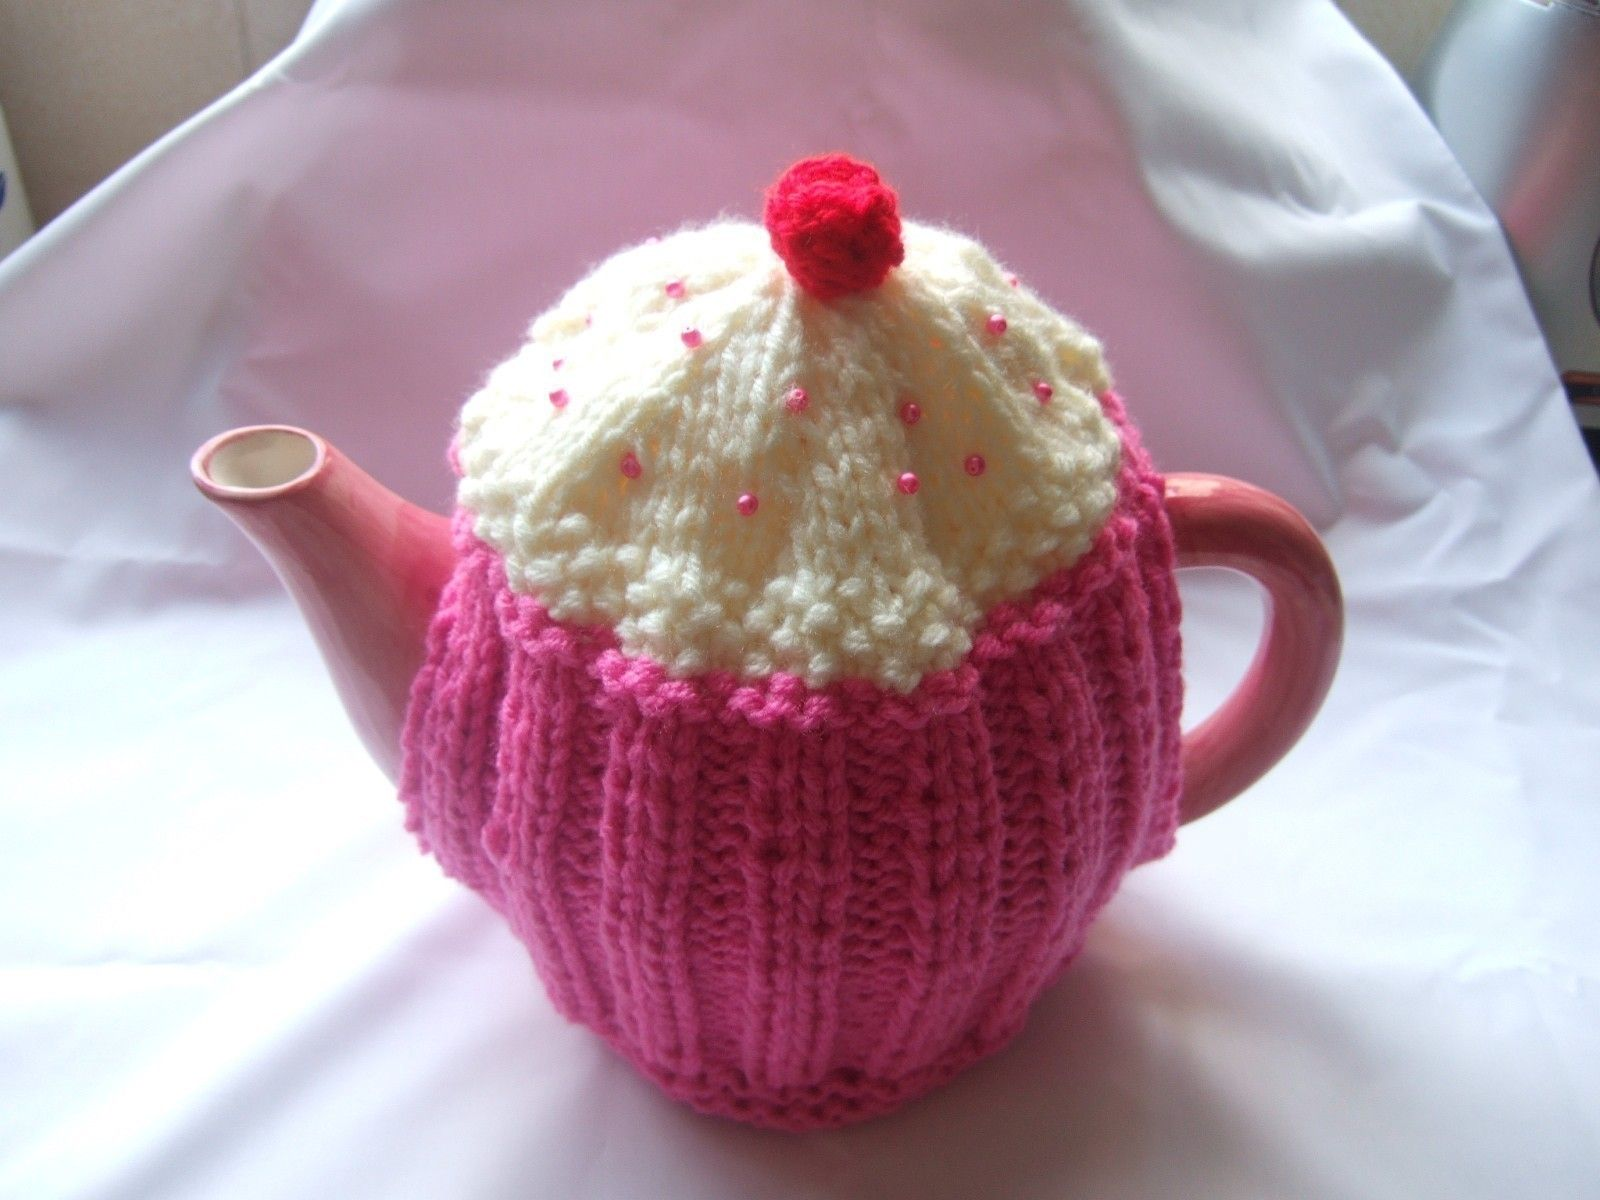 Cupcake tea cosy knitting pattern | Tea cosy knitting pattern, Cosy ...